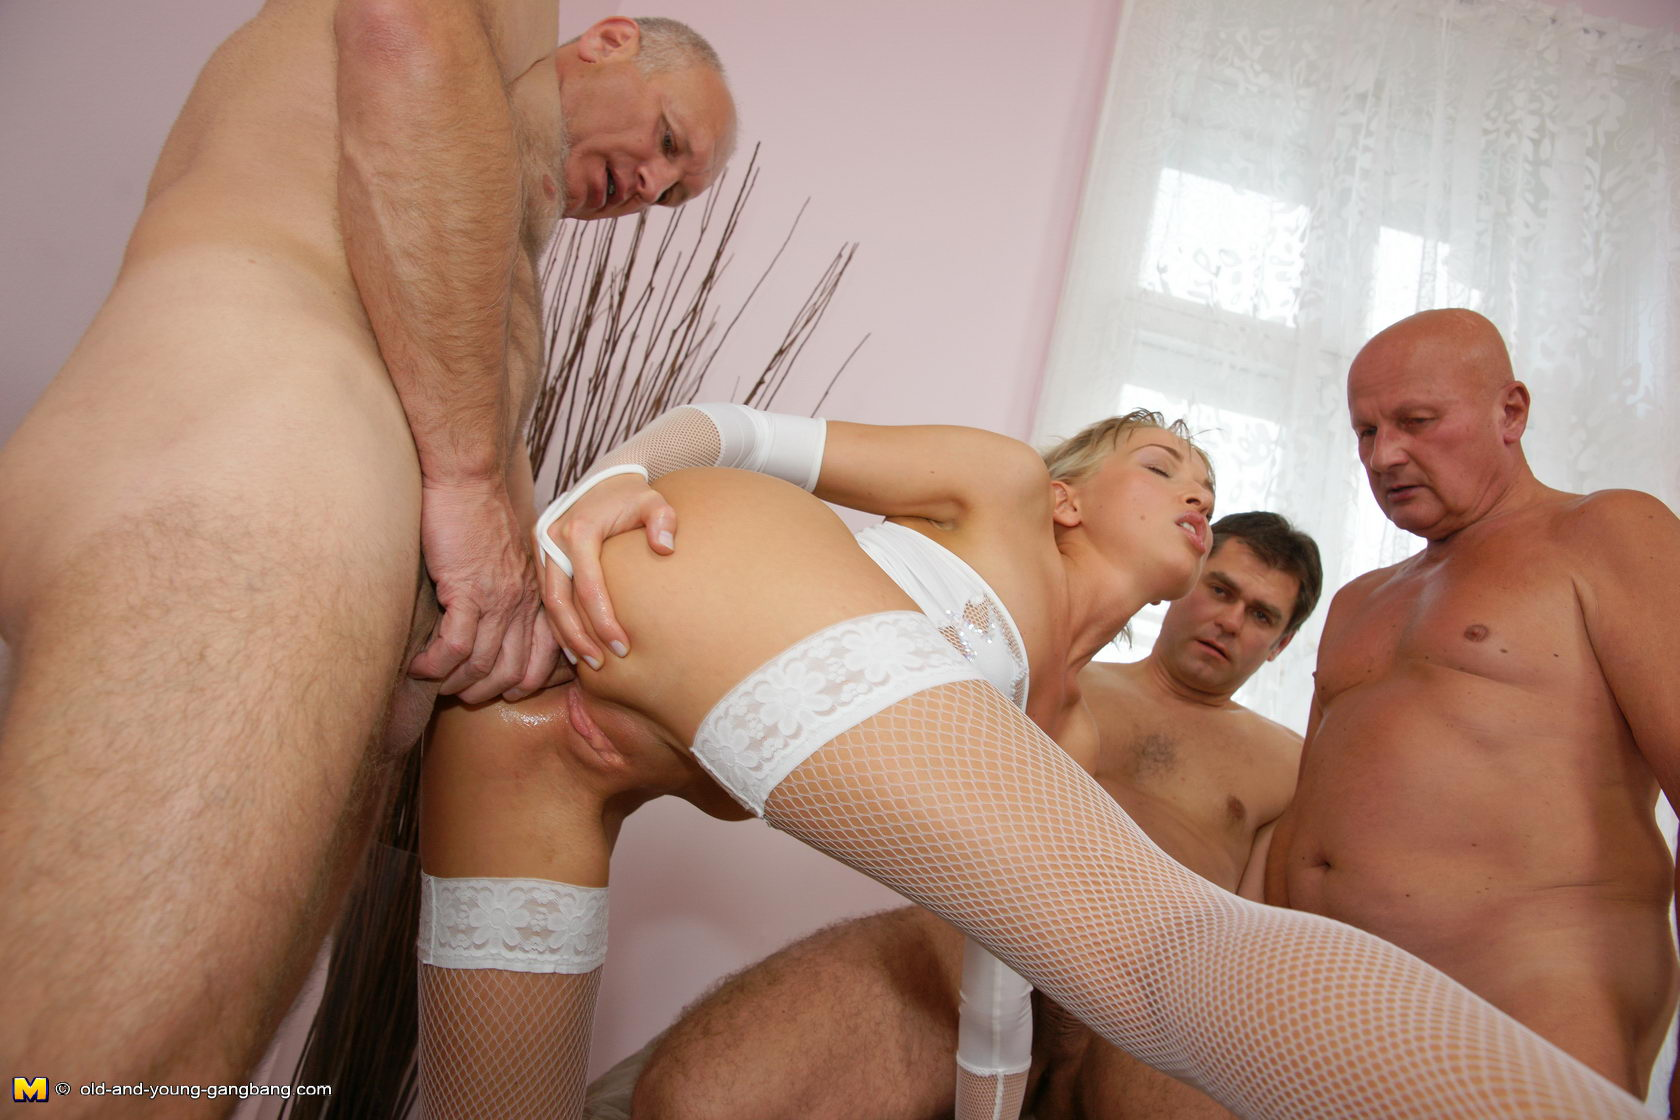 affiliates old and young gangbang galleries 2573 41110